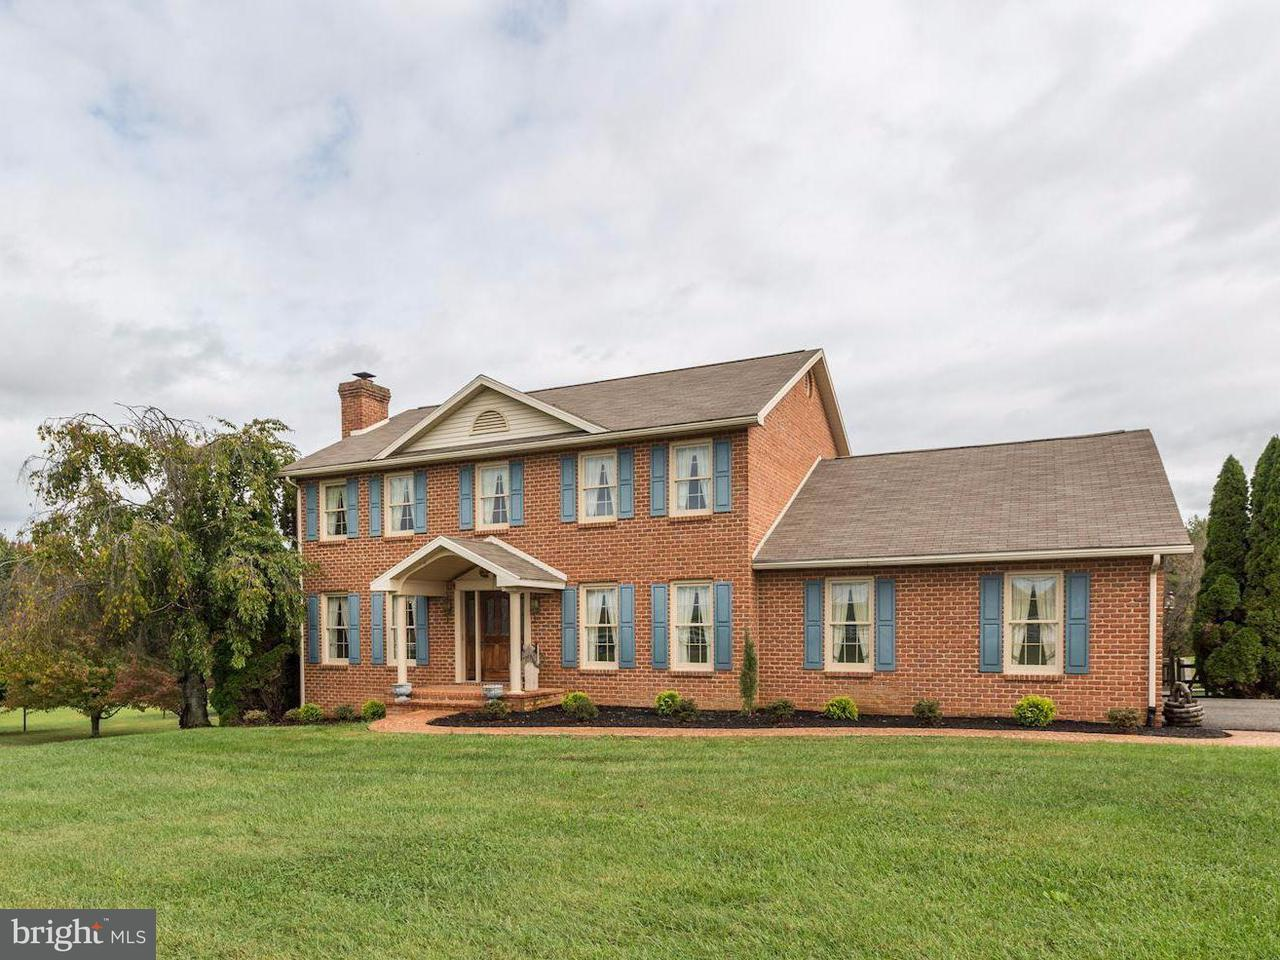 Single Family Home for Sale at 19704 Toms Road 19704 Toms Road Boonsboro, Maryland 21713 United States